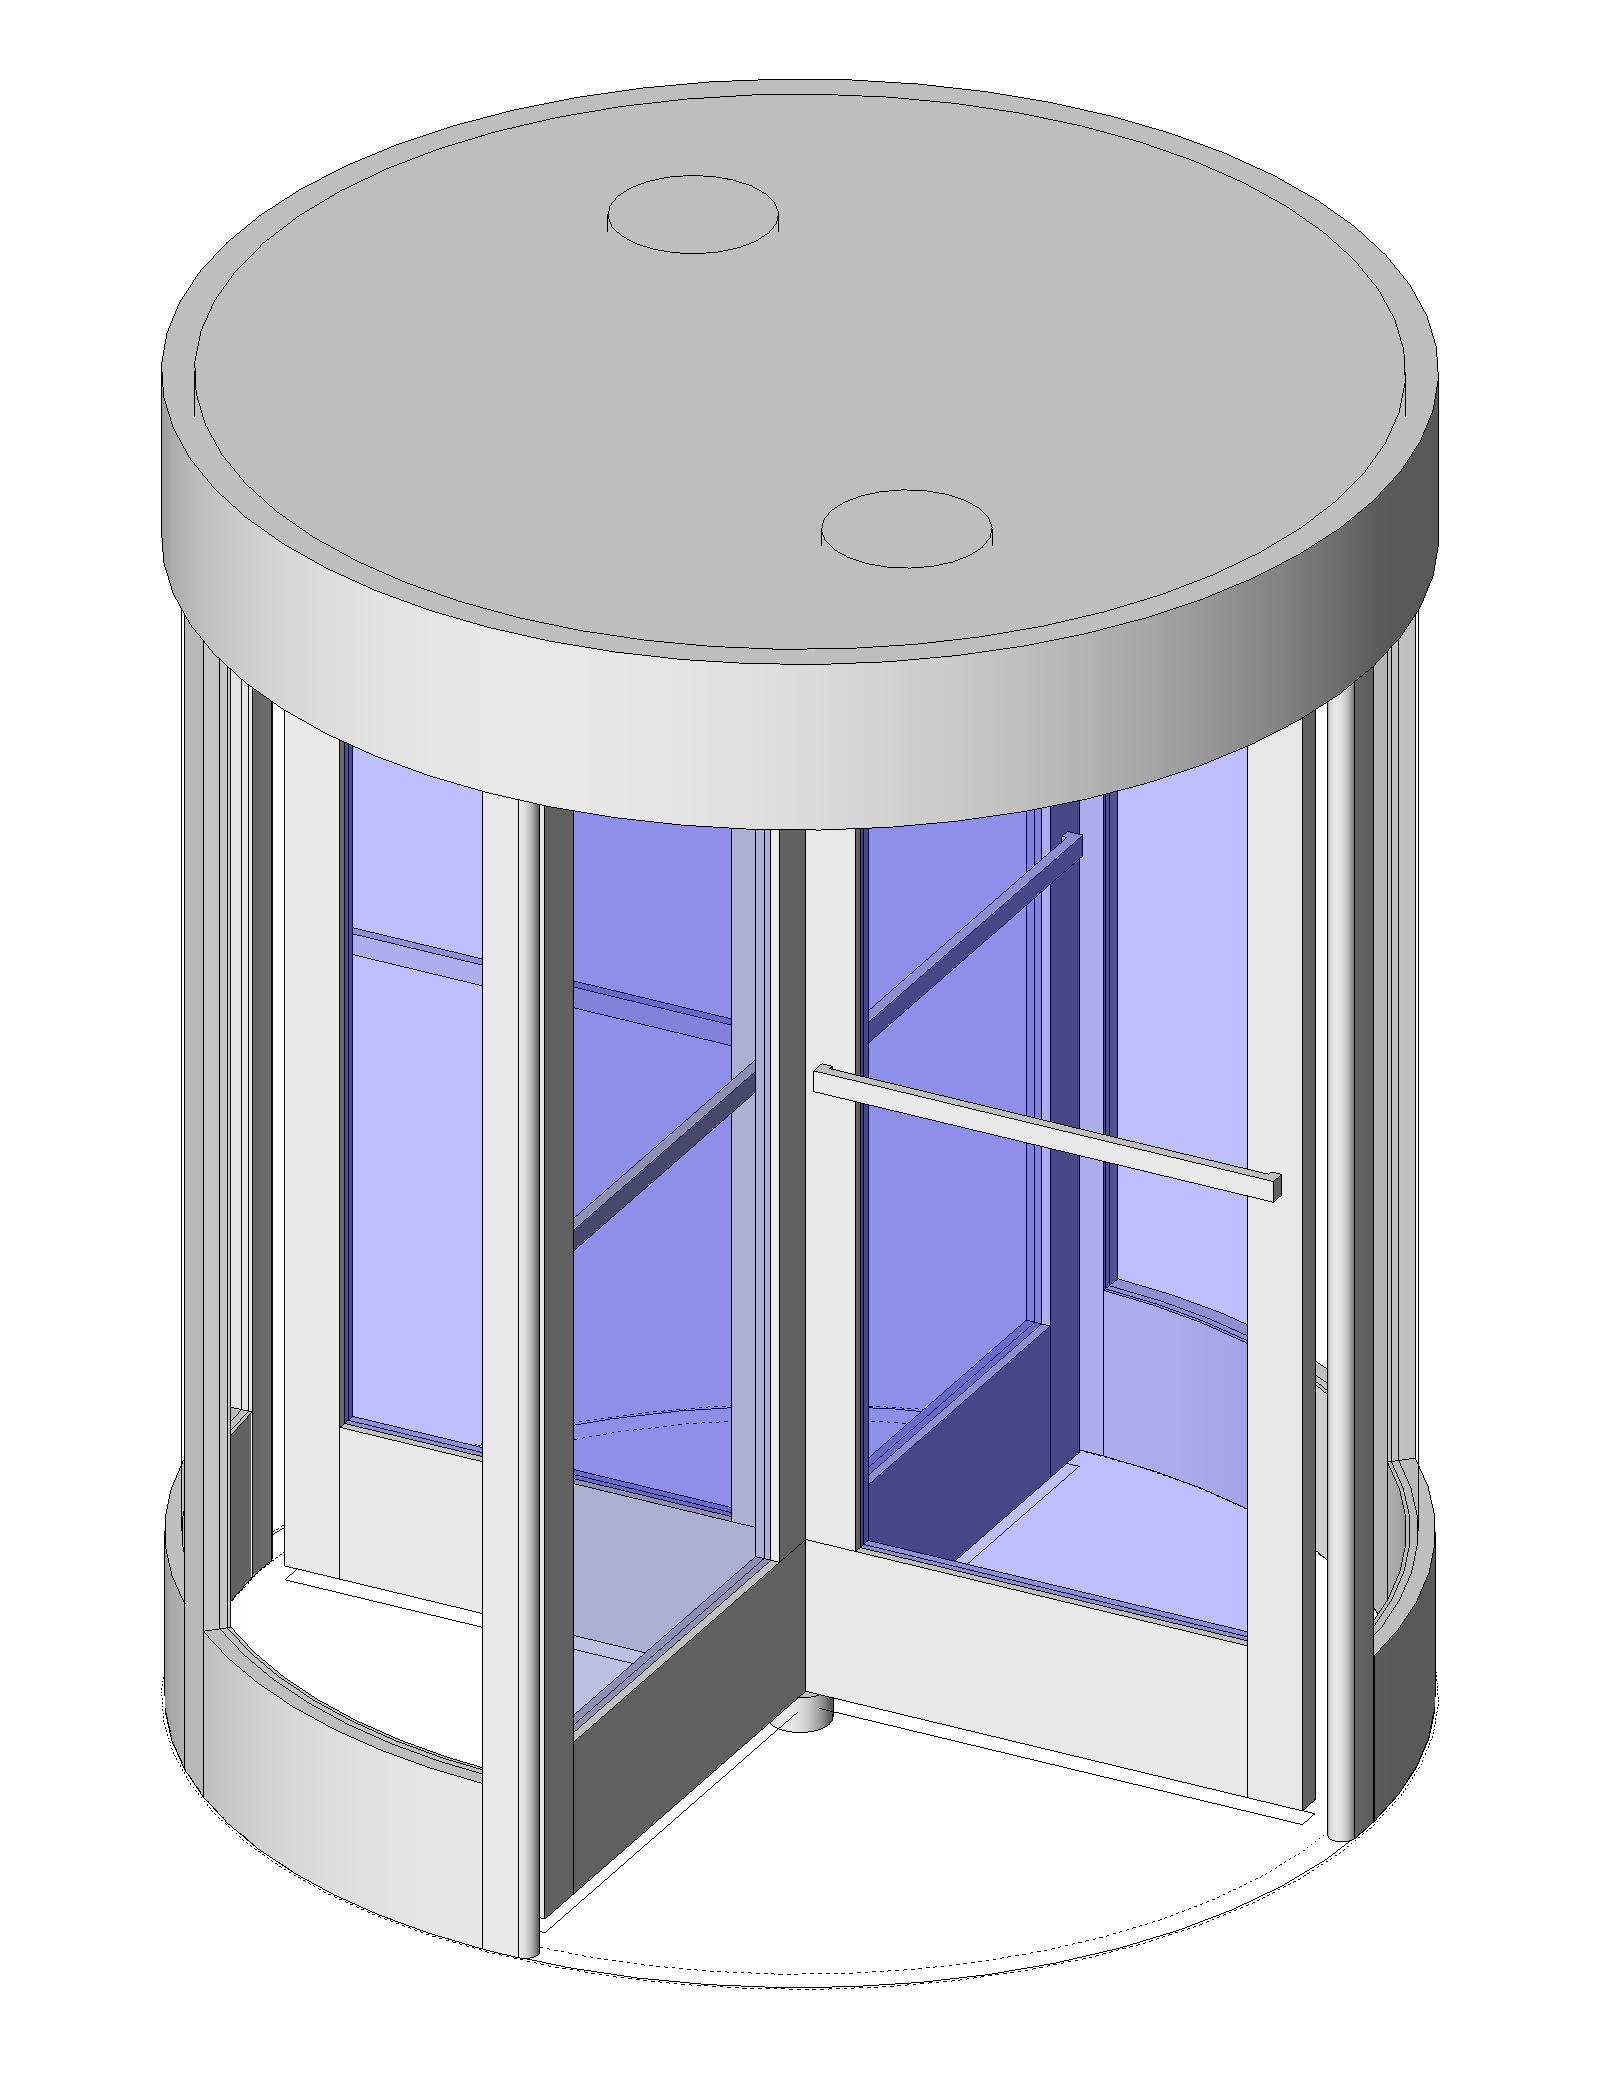 20 Benefits Of Installing A Revolving Door Interior